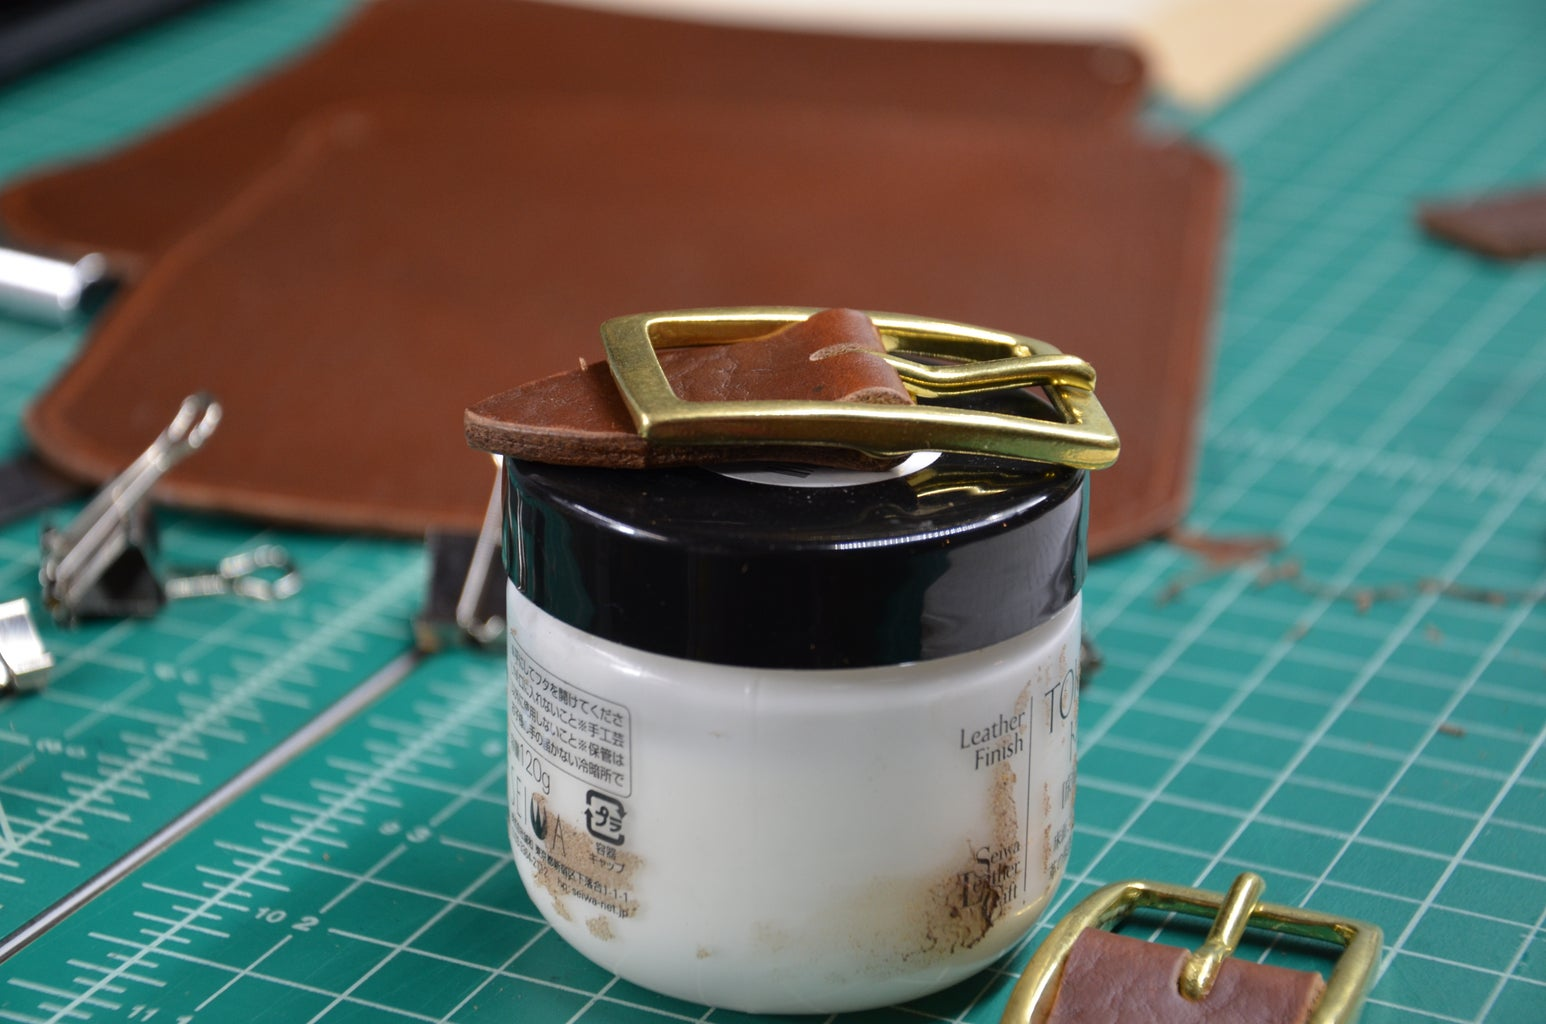 Step 5: Attaching Buckles